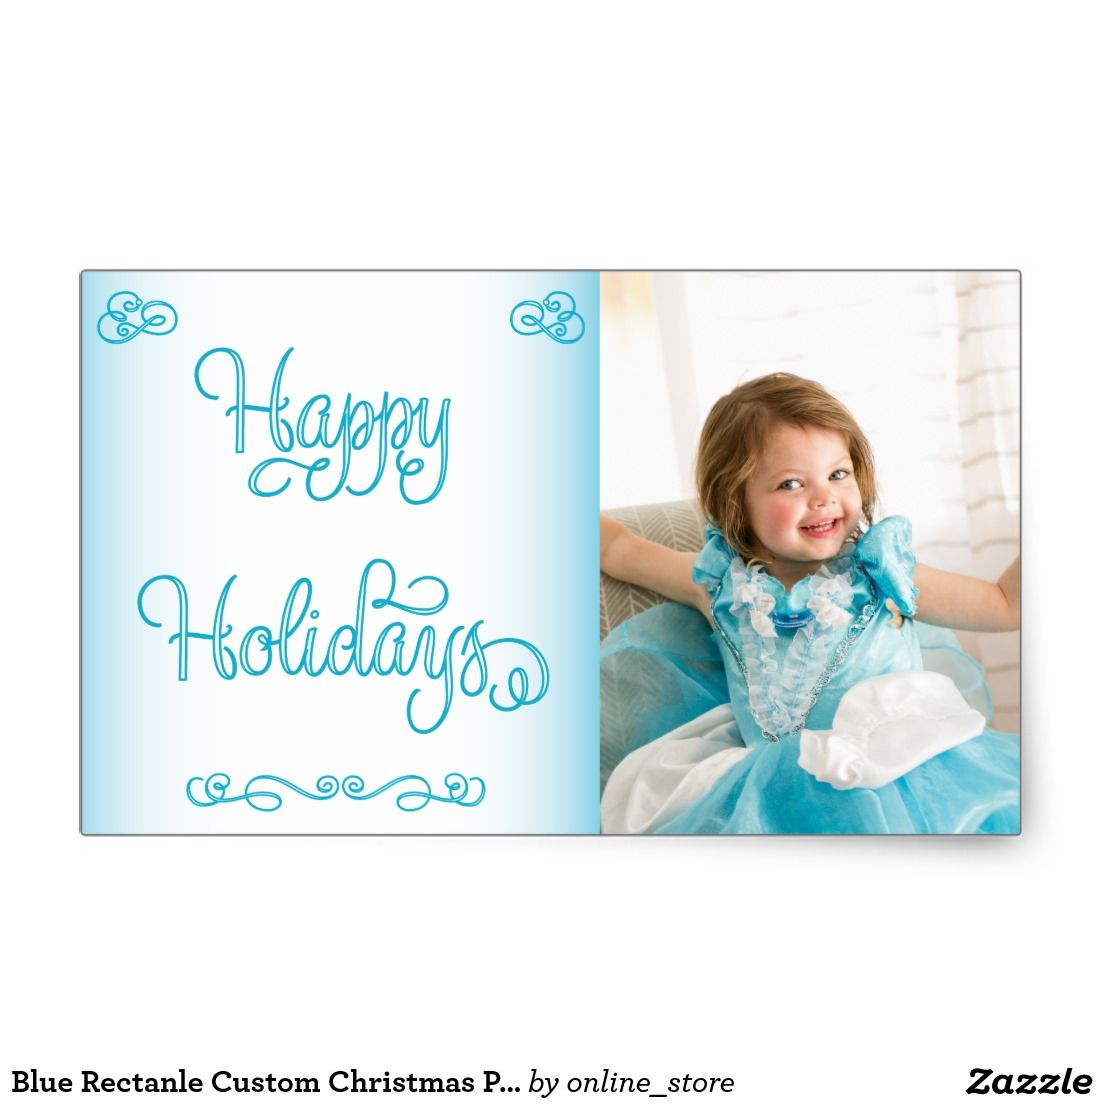 Blue Rectanle Custom Christmas Photo Stickers